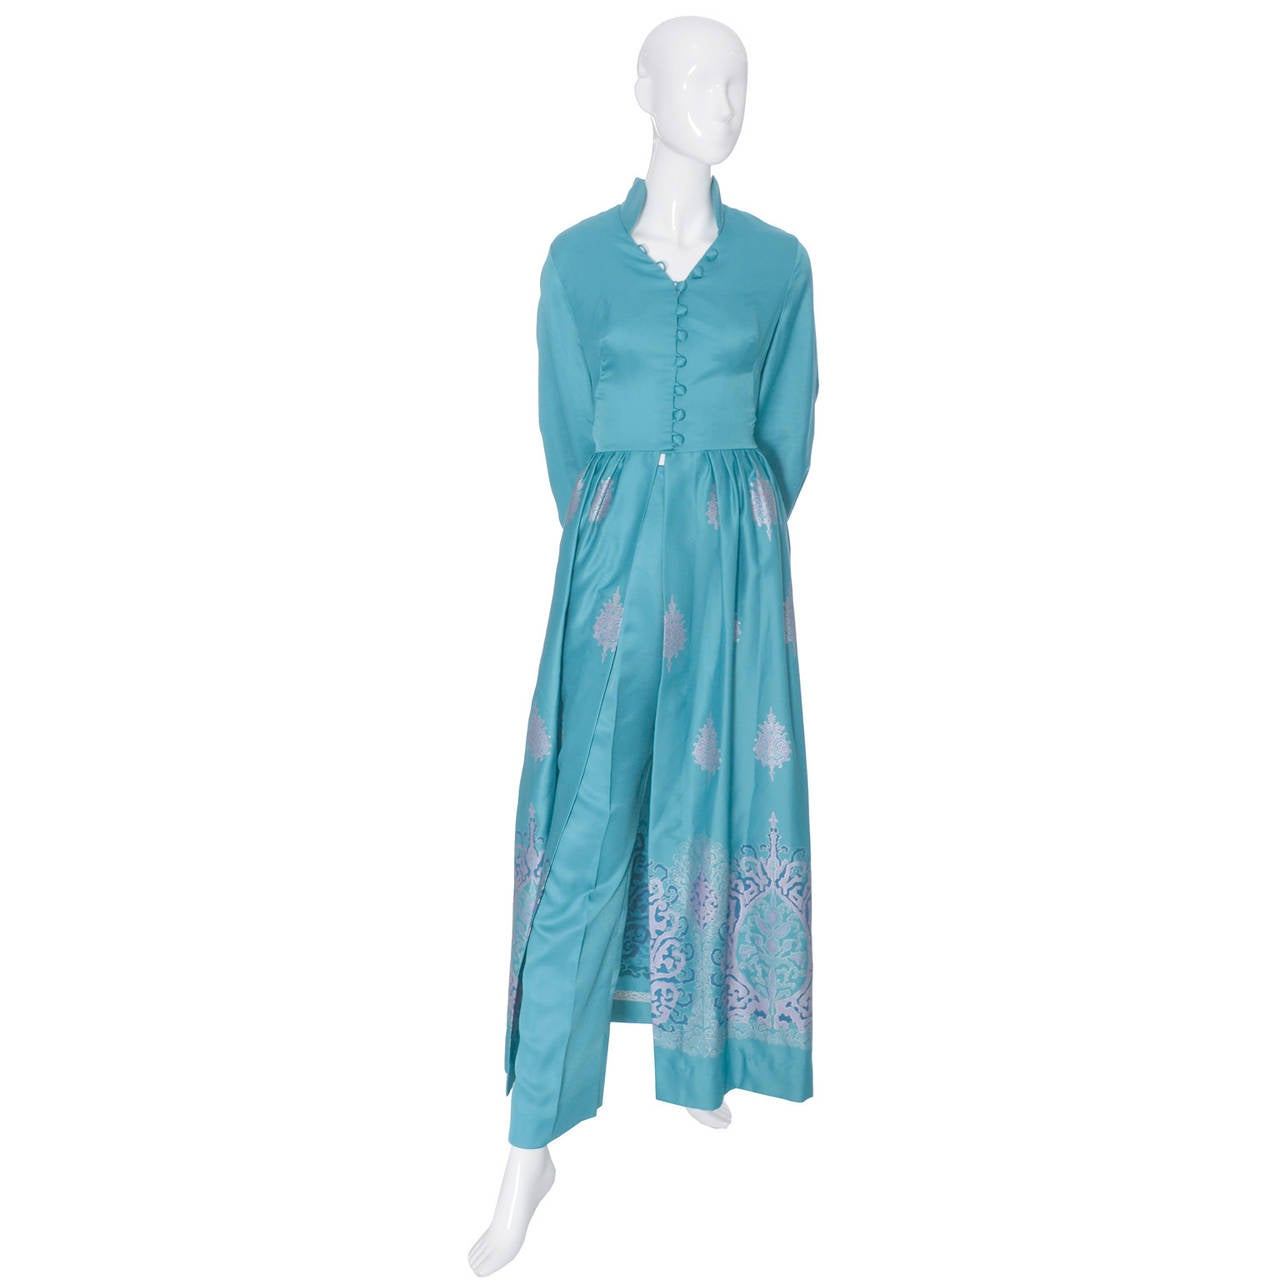 This is a 2 piece vintage outfit from Alfred Shaheen that was never worn. Purchased in the 1970's, this pretty turquoise blue ensemble includes an over dress with a split skirt in the front that reveals high waisted pants with back zipper